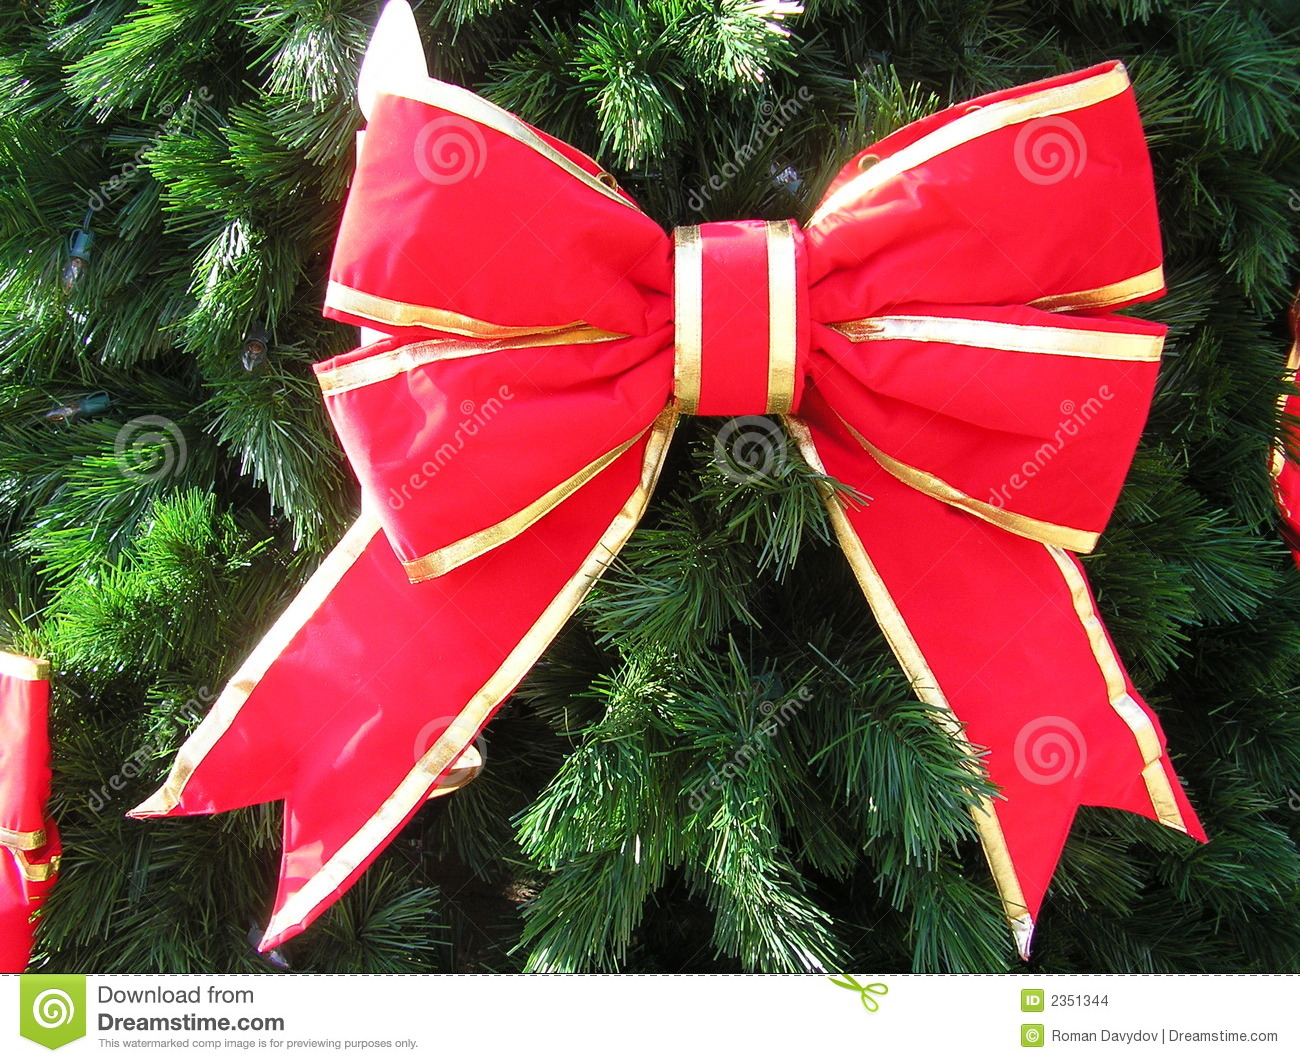 red bow on christmas tree - Christmas Tree Bows